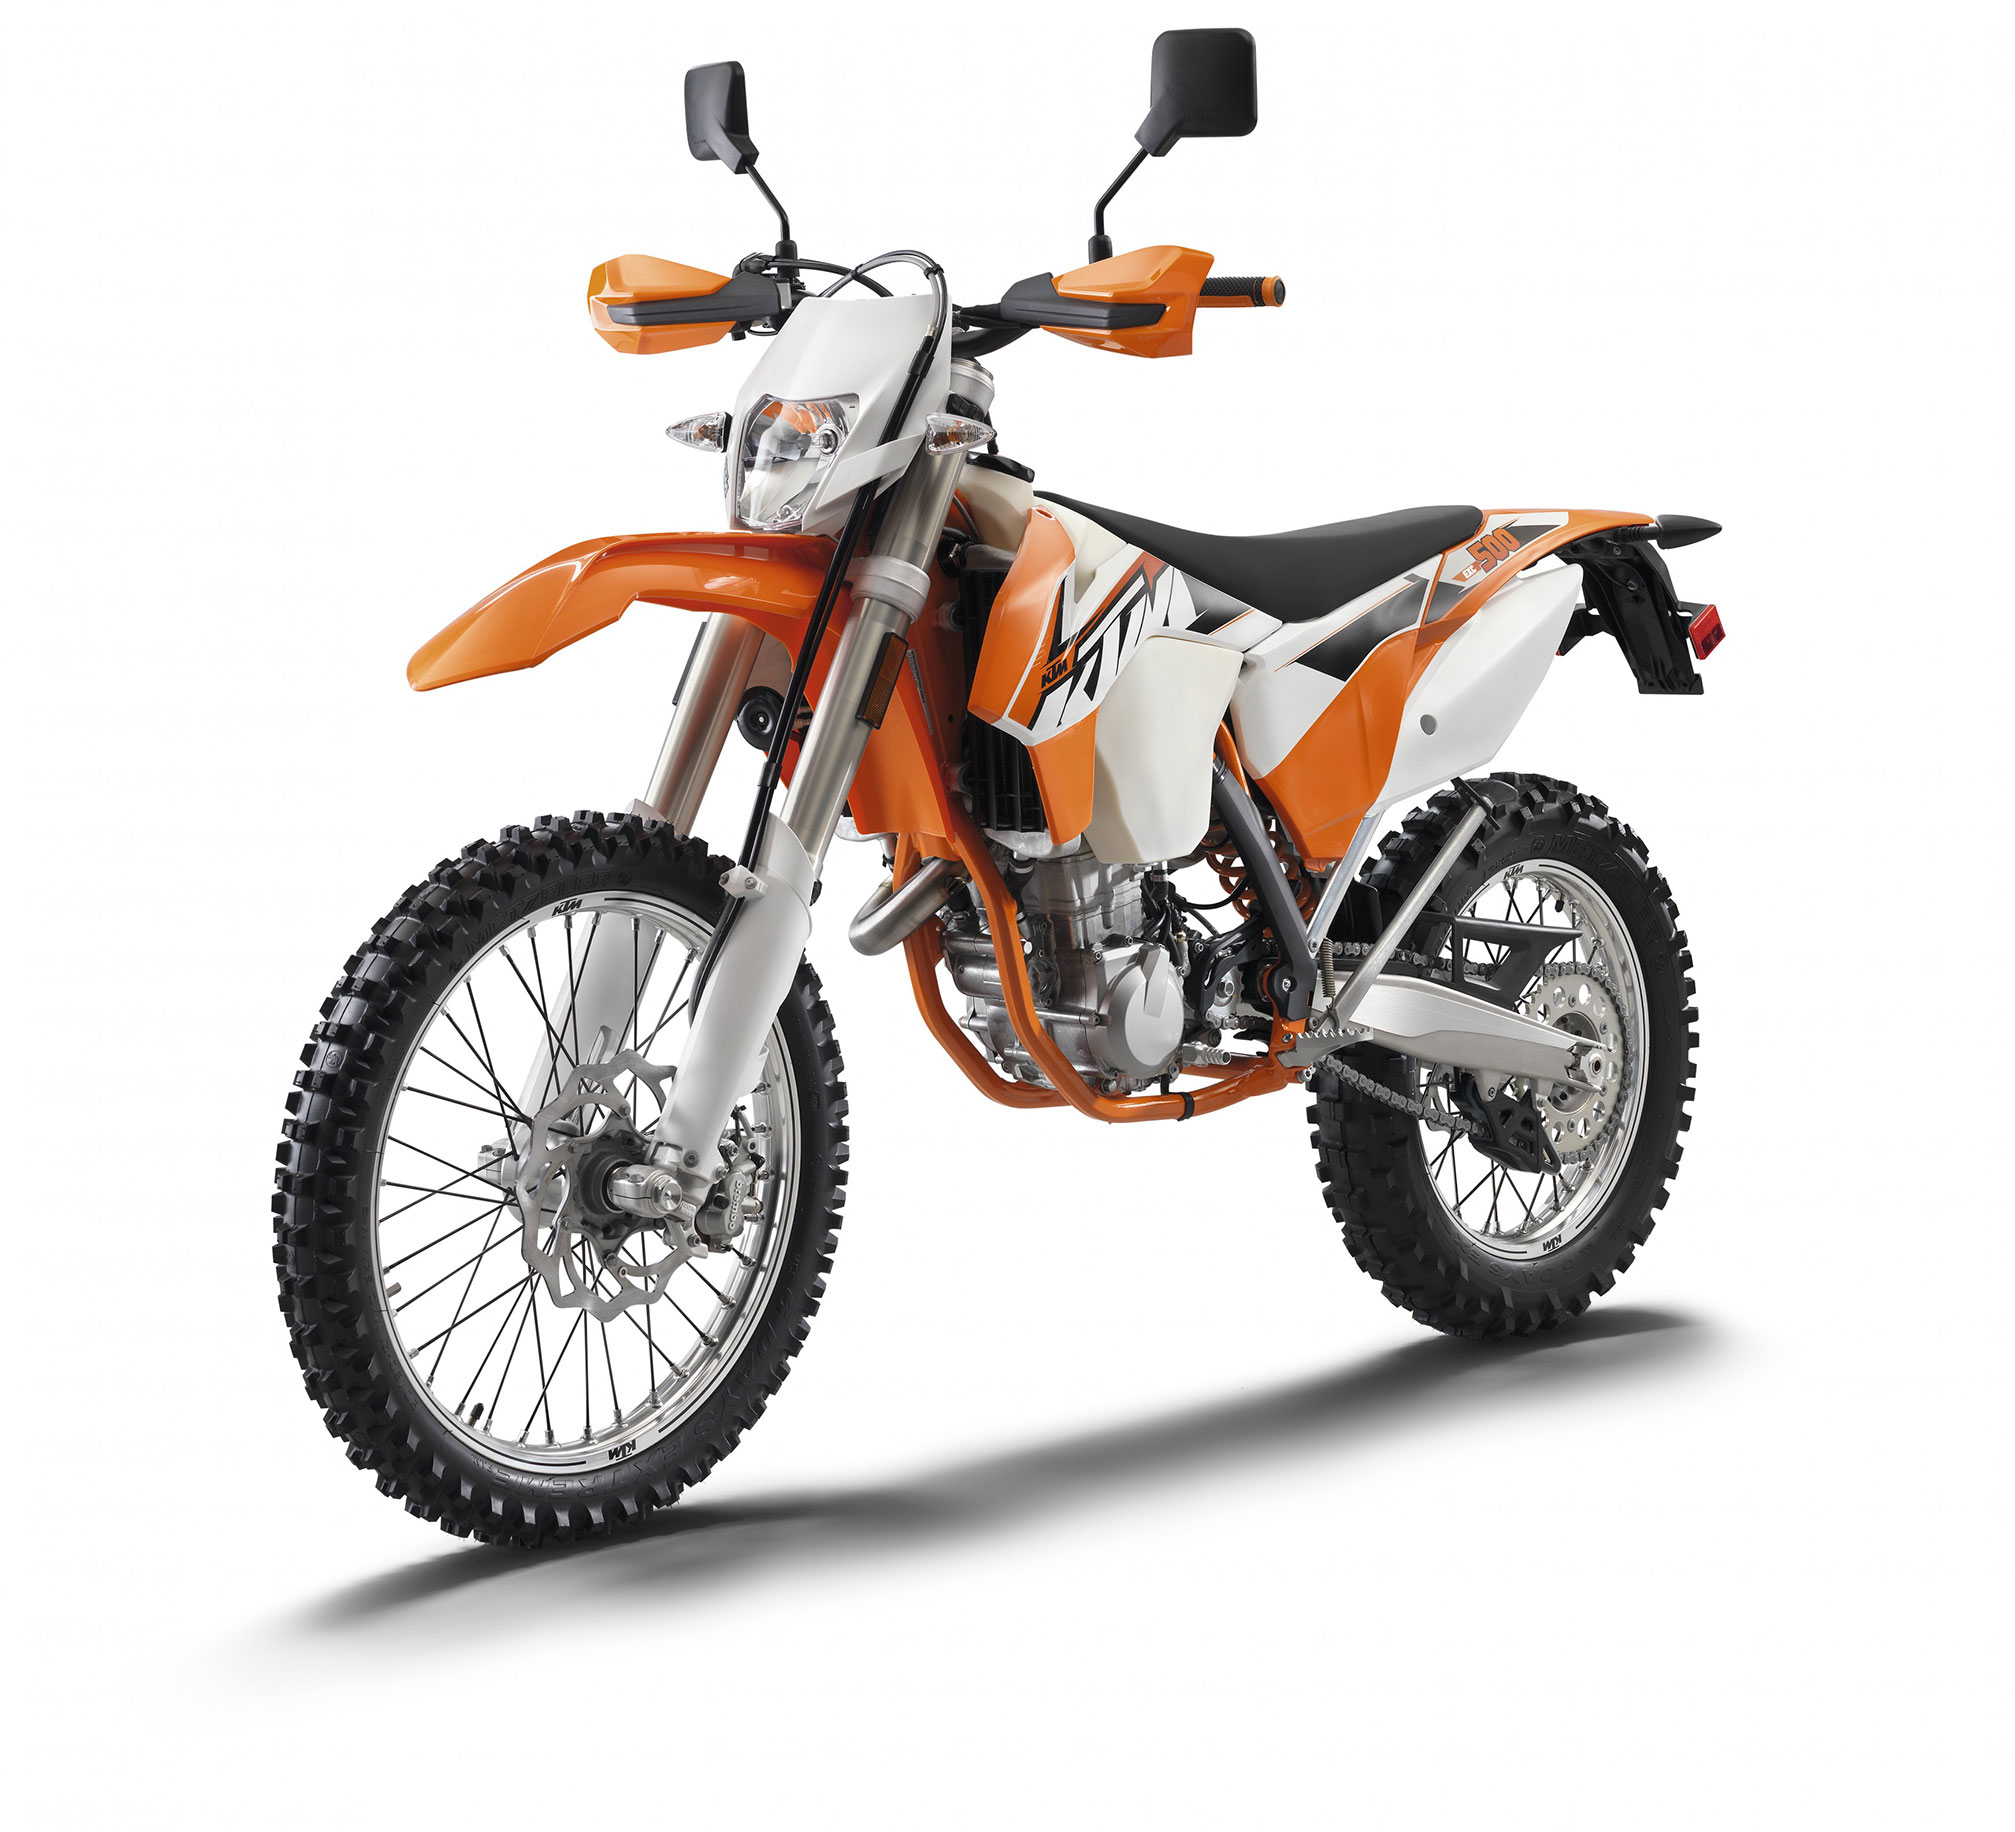 2015 ktm 500 exc review. Black Bedroom Furniture Sets. Home Design Ideas